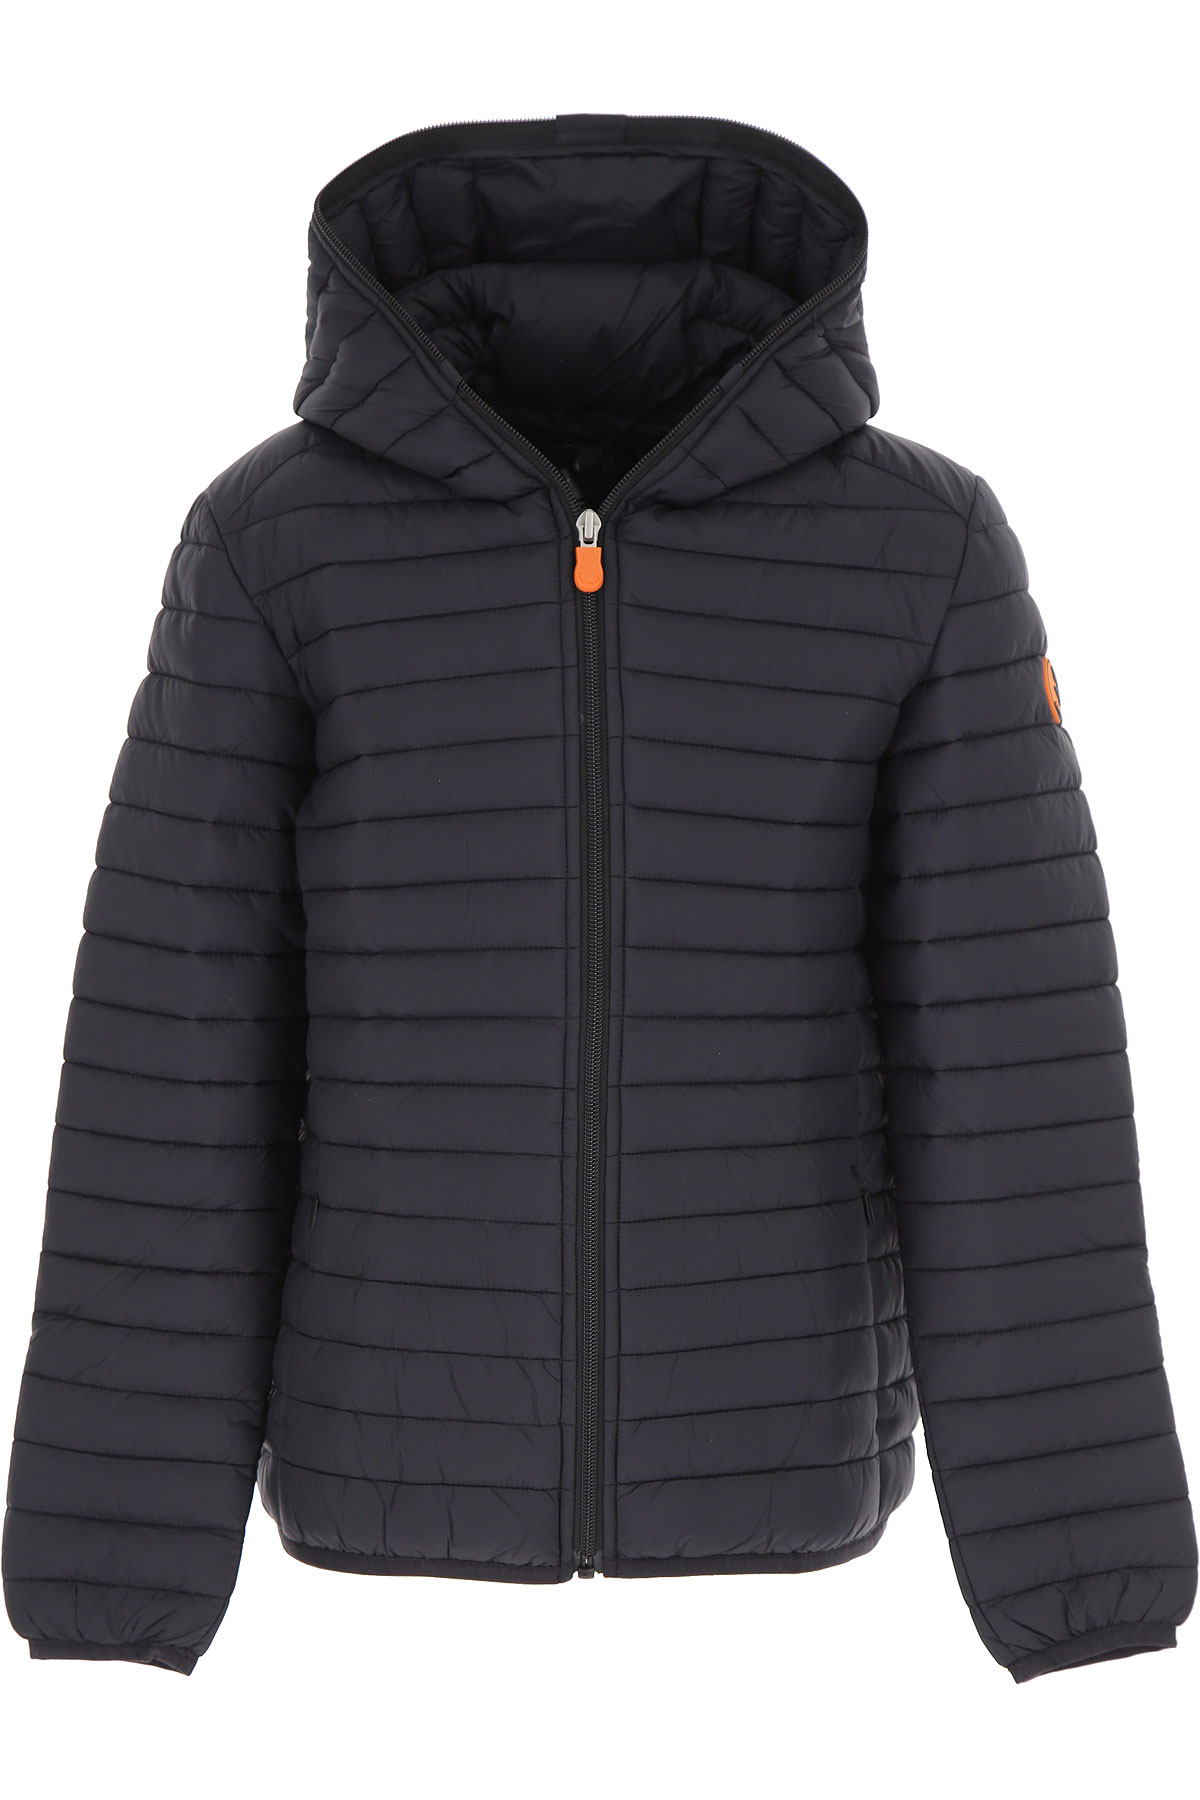 Save the Duck Boys Down Jacket for Kids, Puffer Ski Jacket On Sale, Black, Nylon, 2019, 10Y 12Y 14Y 16Y